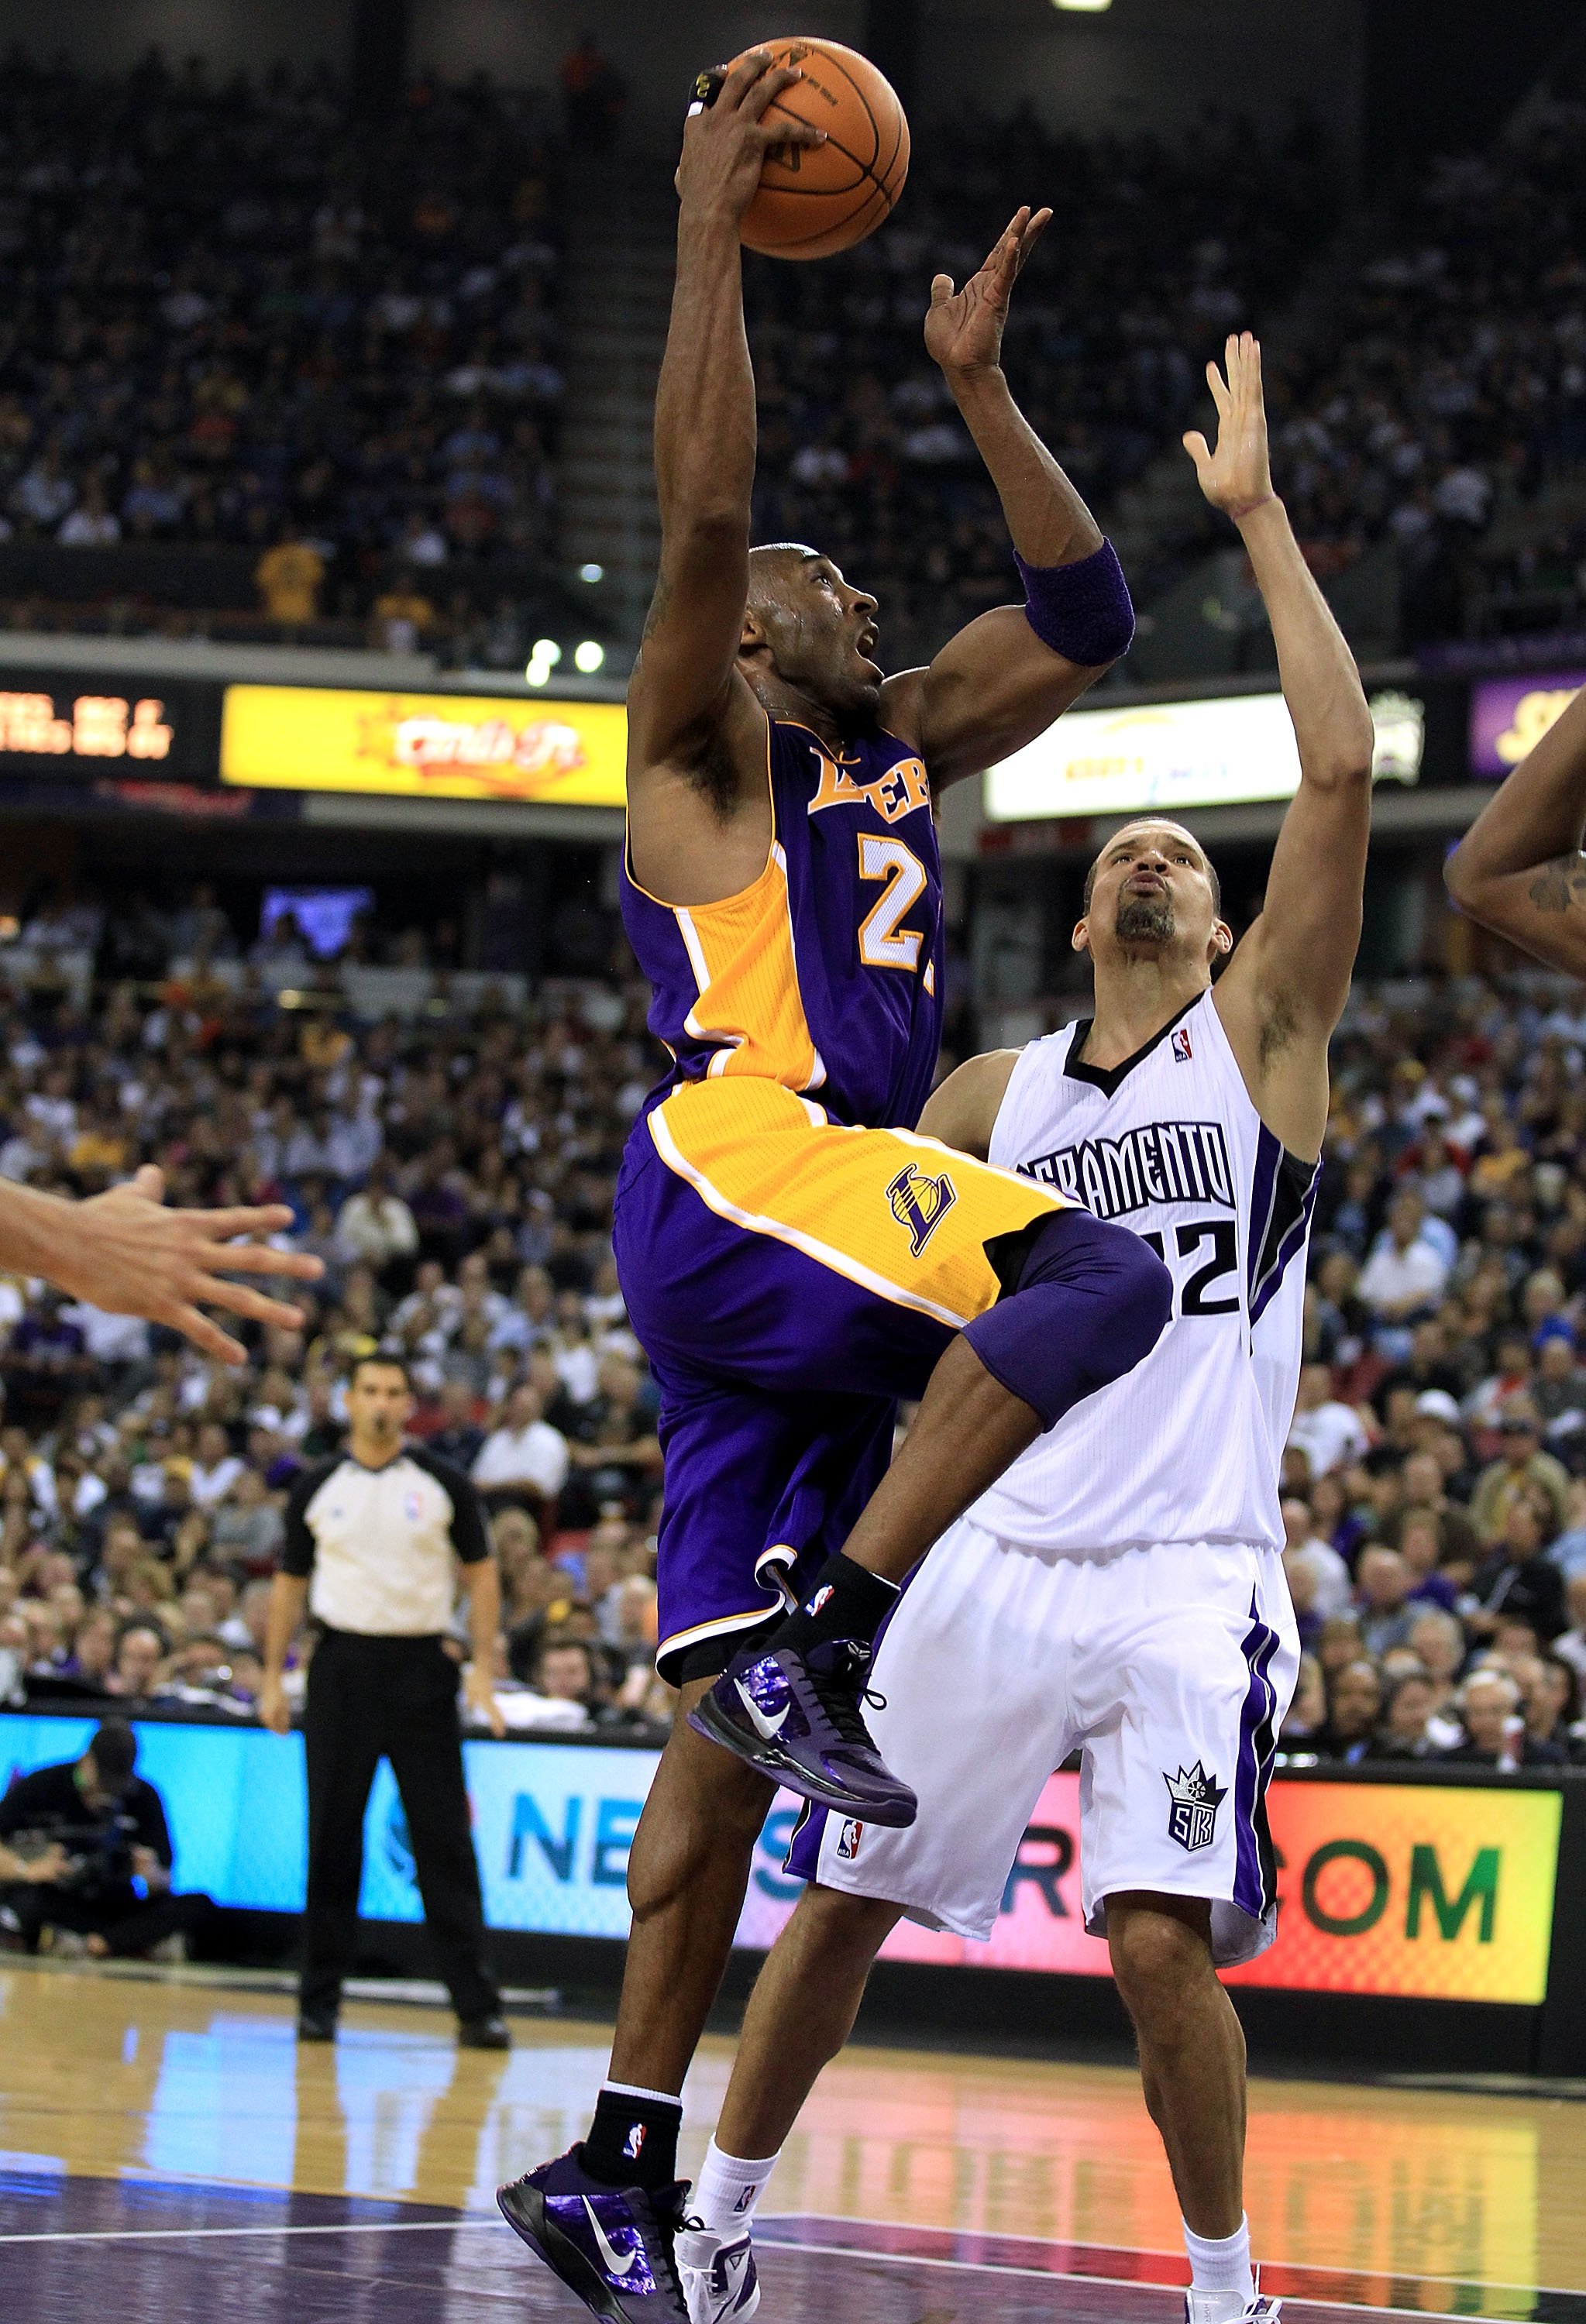 SACRAMENTO, CA - NOVEMBER 03:  Kobe Bryant #24 of the Los Angeles Lakers in action against the Sacramento Kings at ARCO Arena on November 3, 2010 in Sacramento, California.  NOTE TO USER: User expressly acknowledges and agrees that, by downloading and or